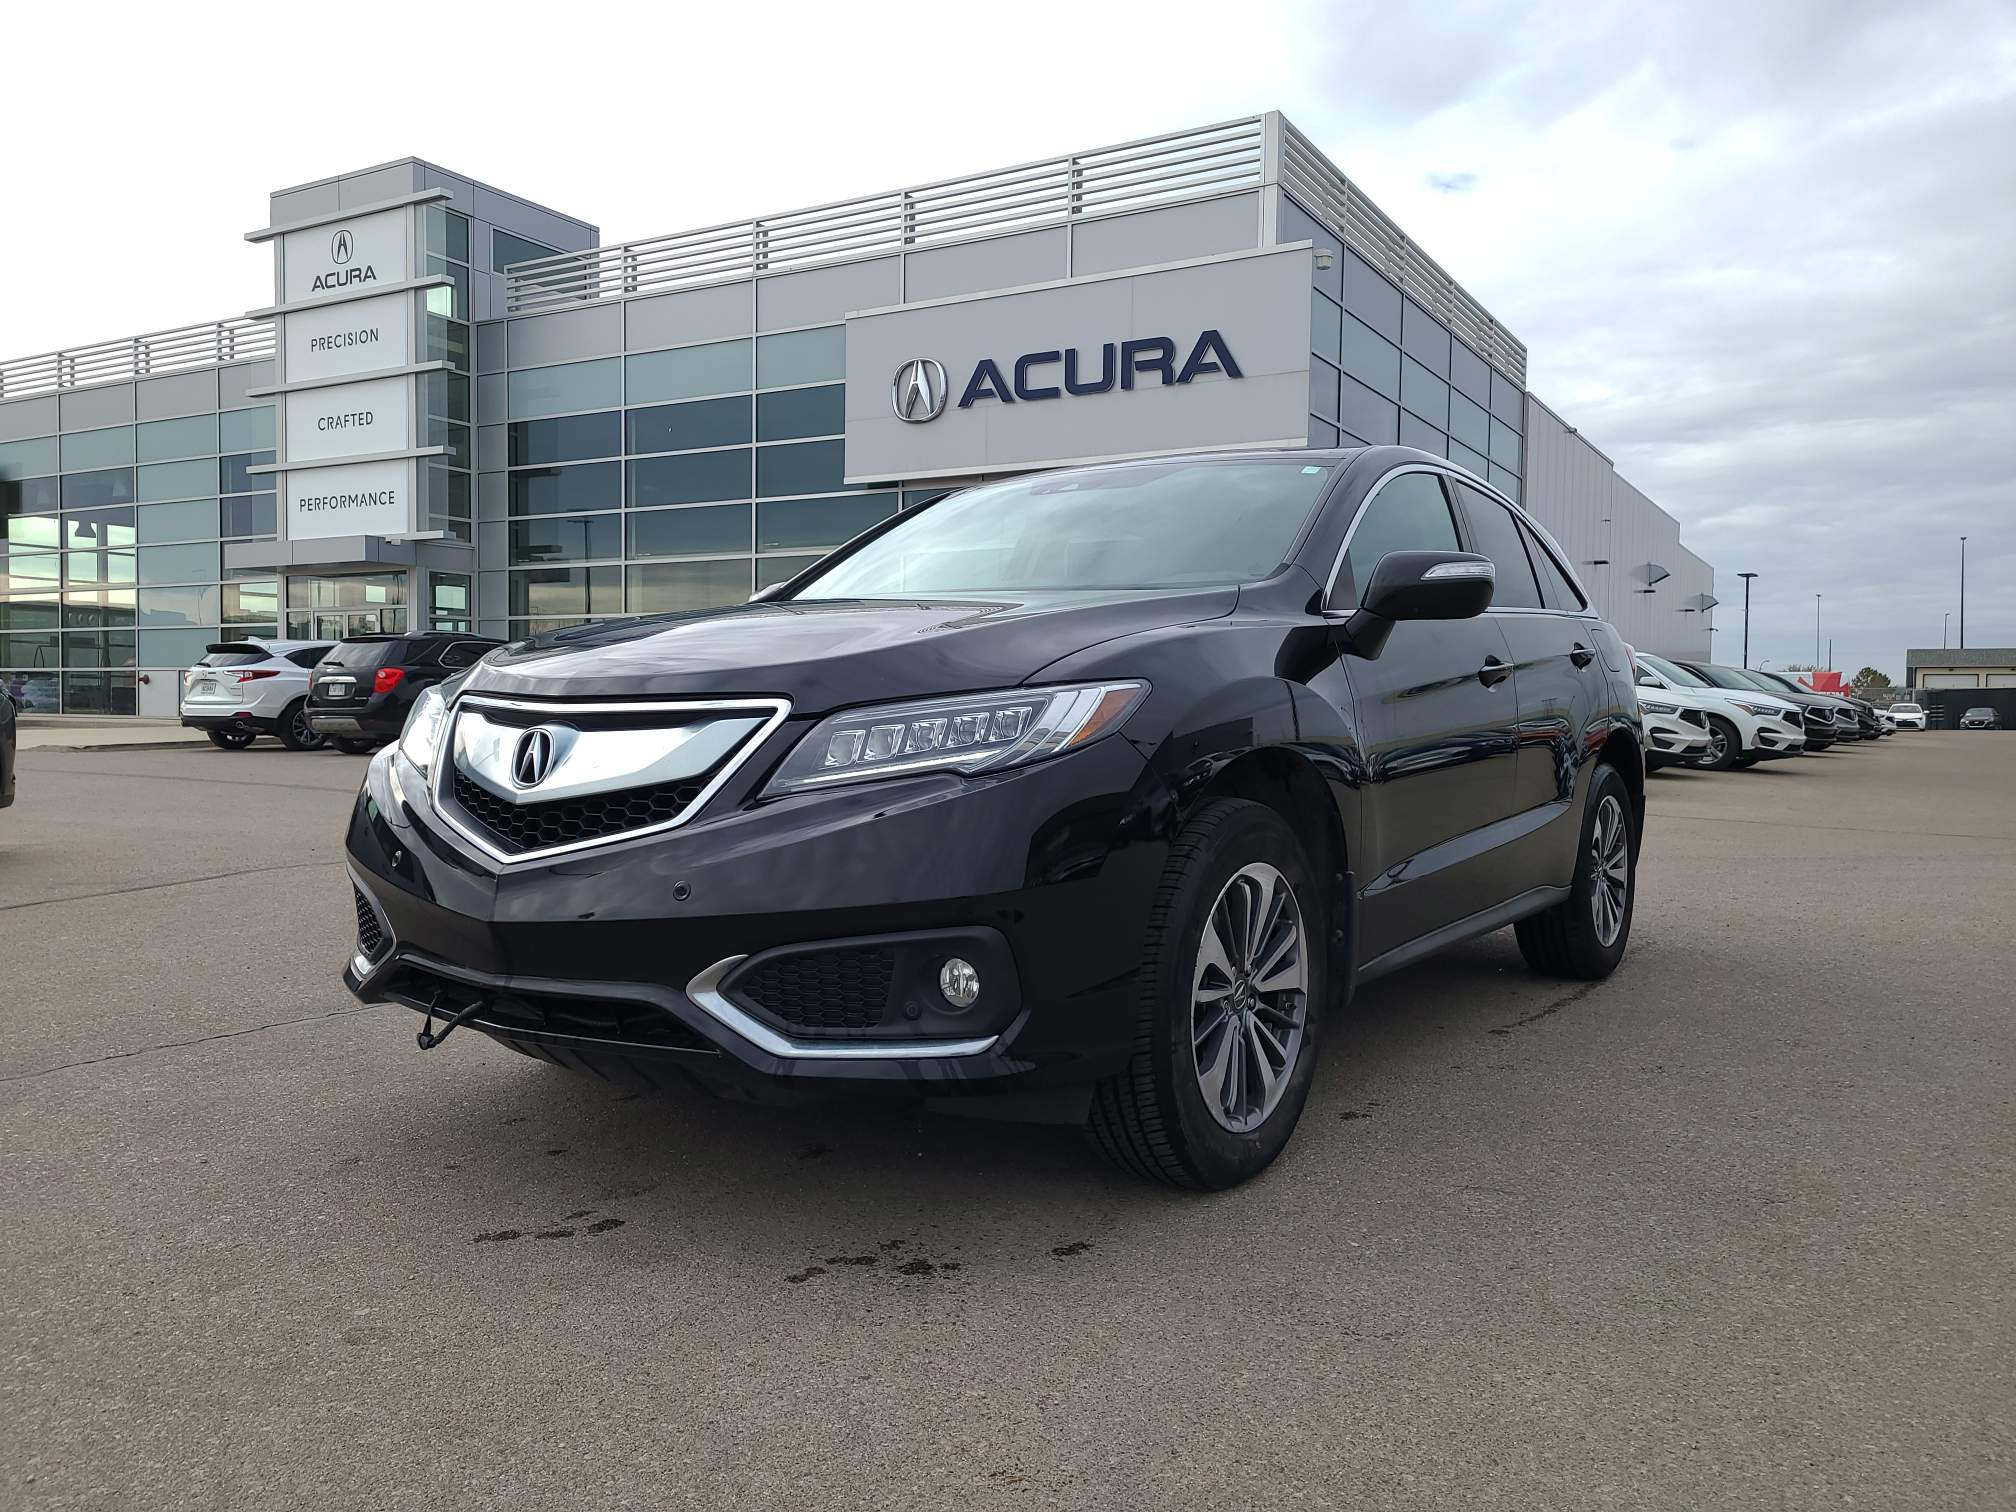 used 2017 Acura RDX car, priced at $29,995